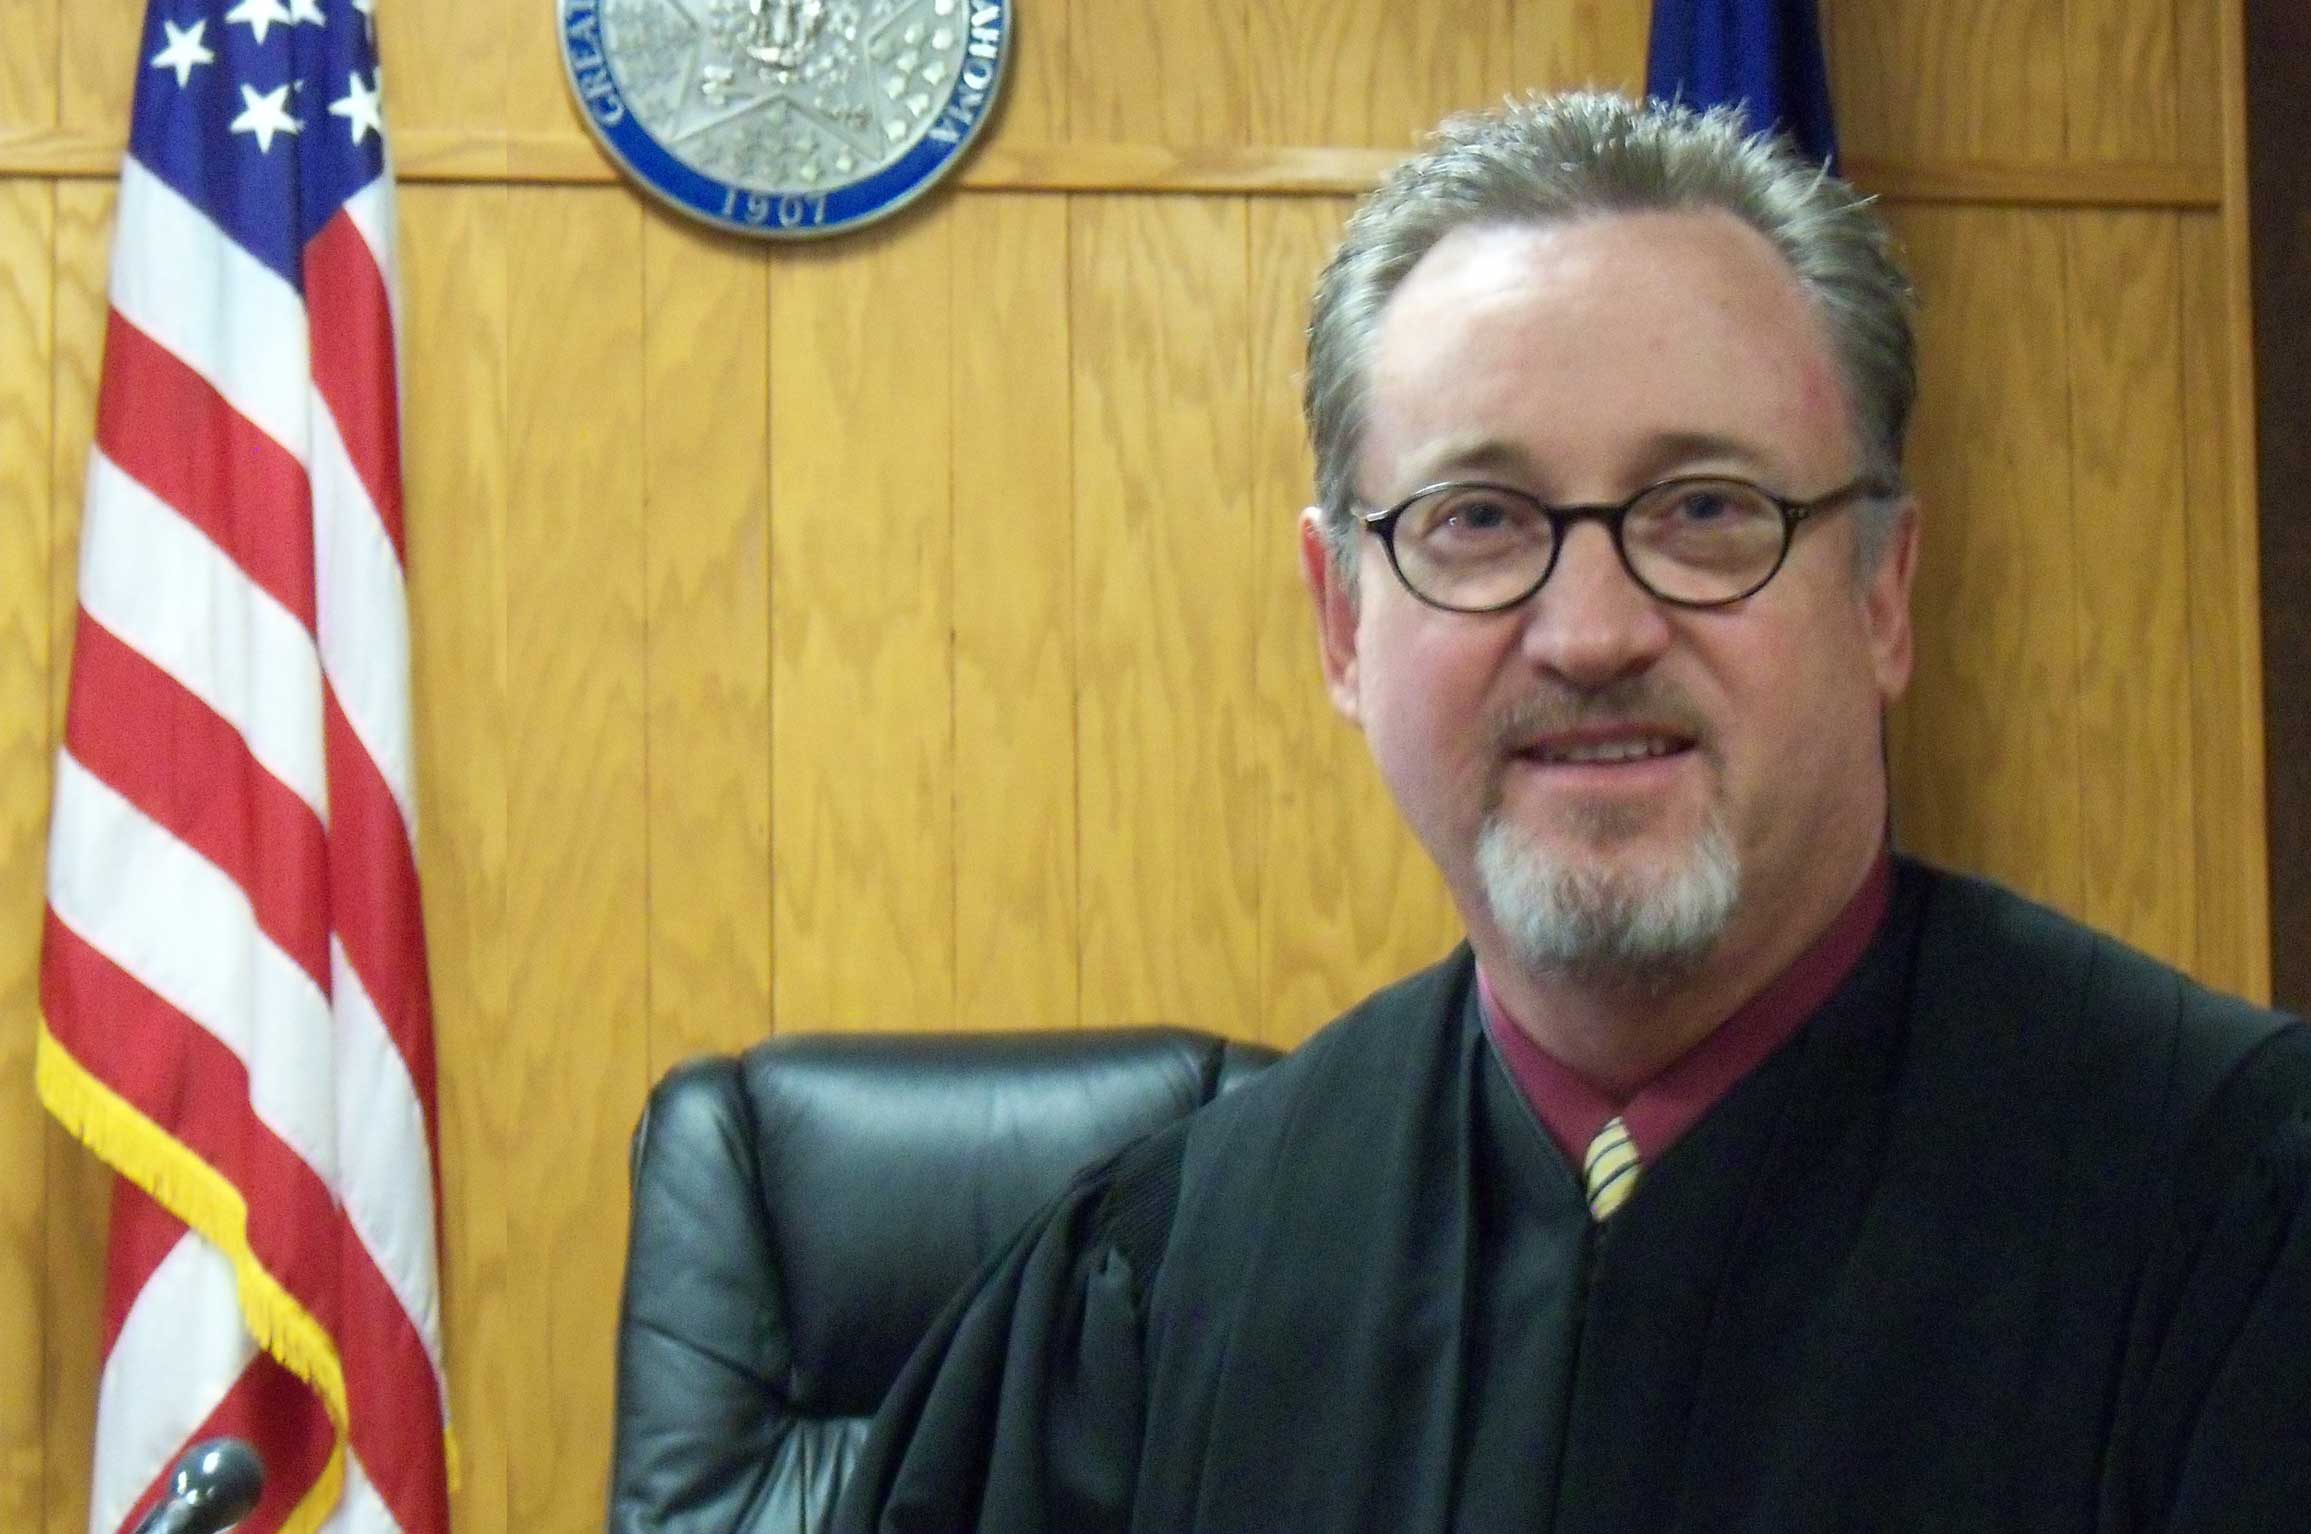 Grant County Oklahoma Associate District Judge: Hon. Jack D. Hammontree